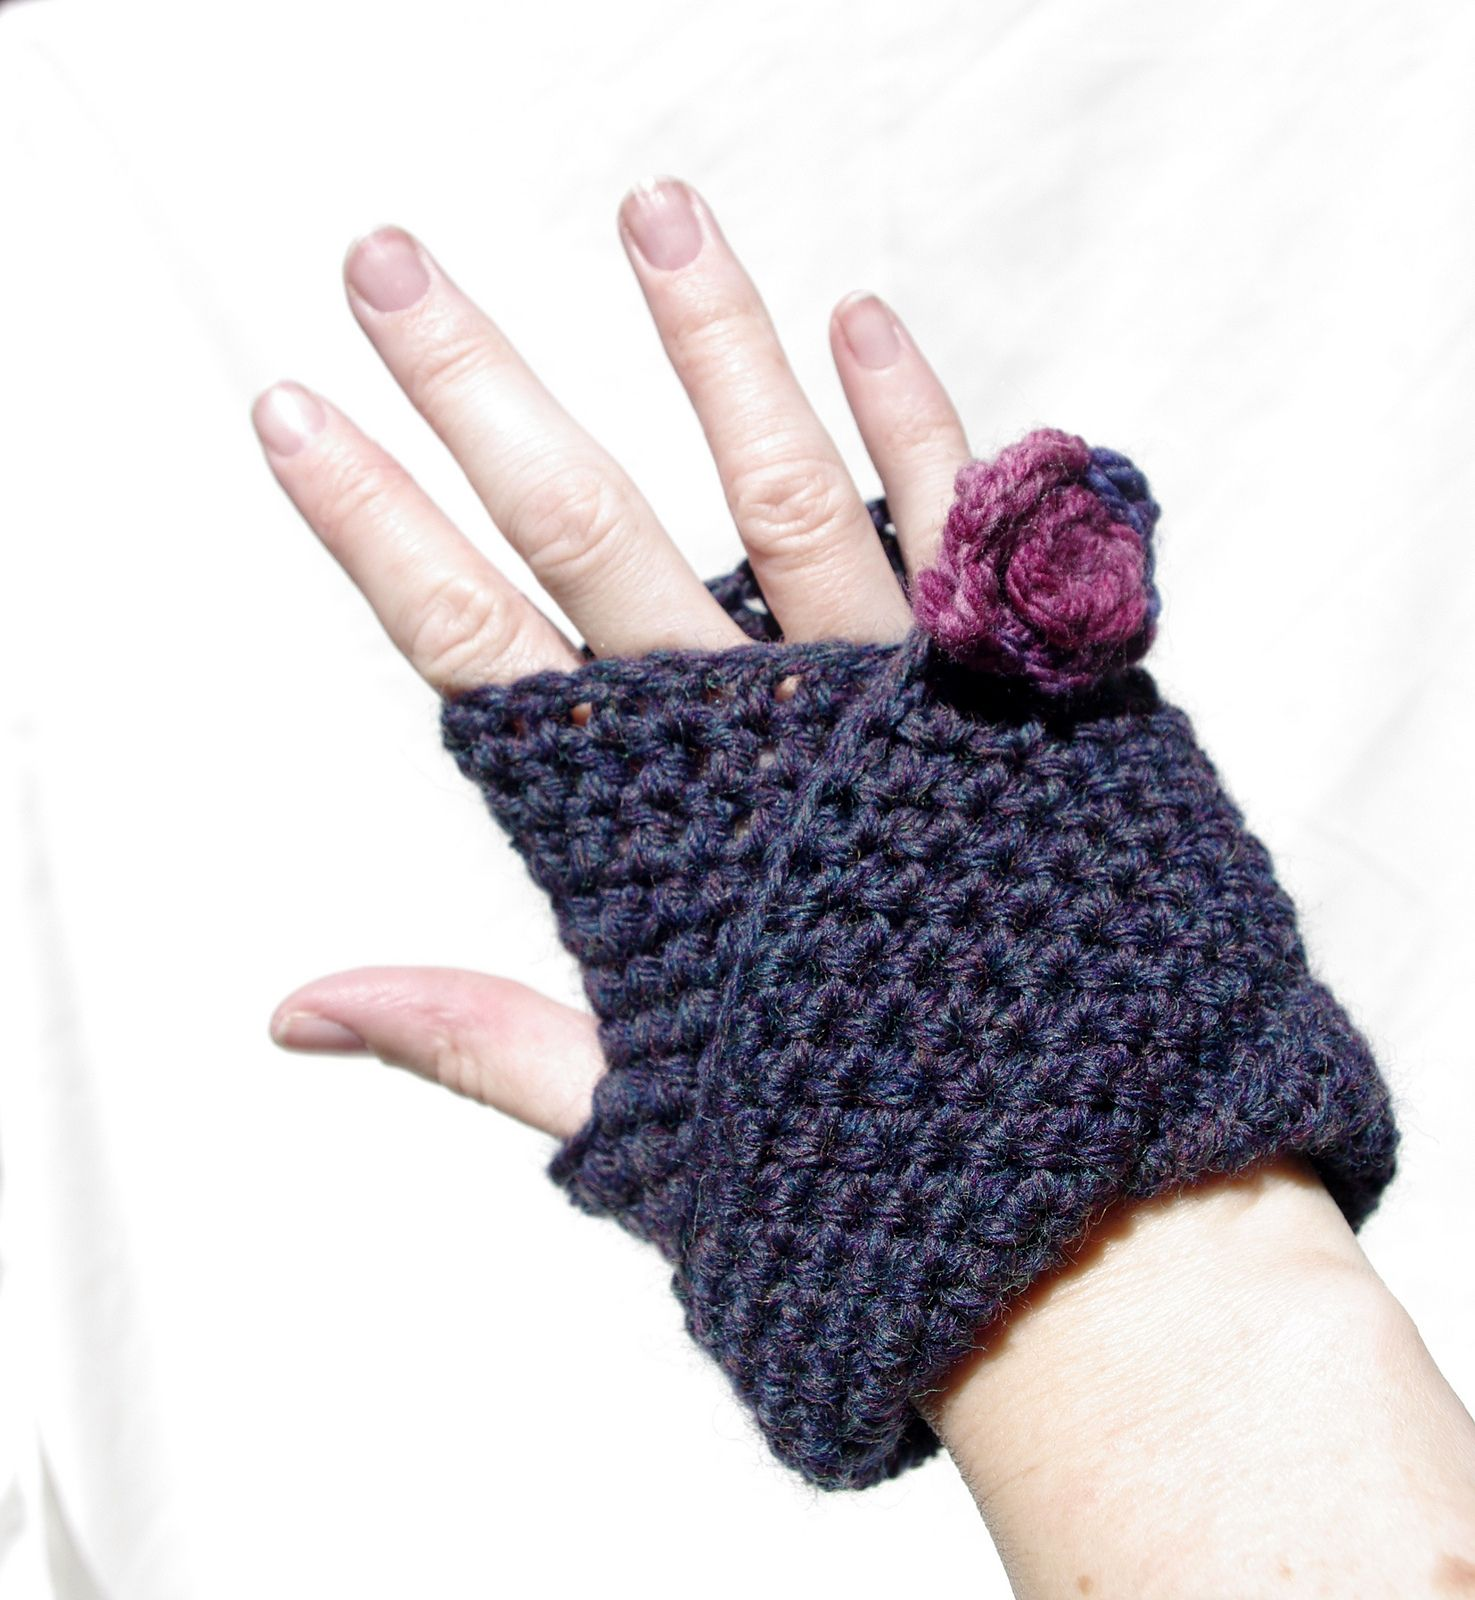 Ravelry mobius mitts v1 by nyss parkes free download at http ravelry mobius mitts pattern by nyss parkes bankloansurffo Gallery